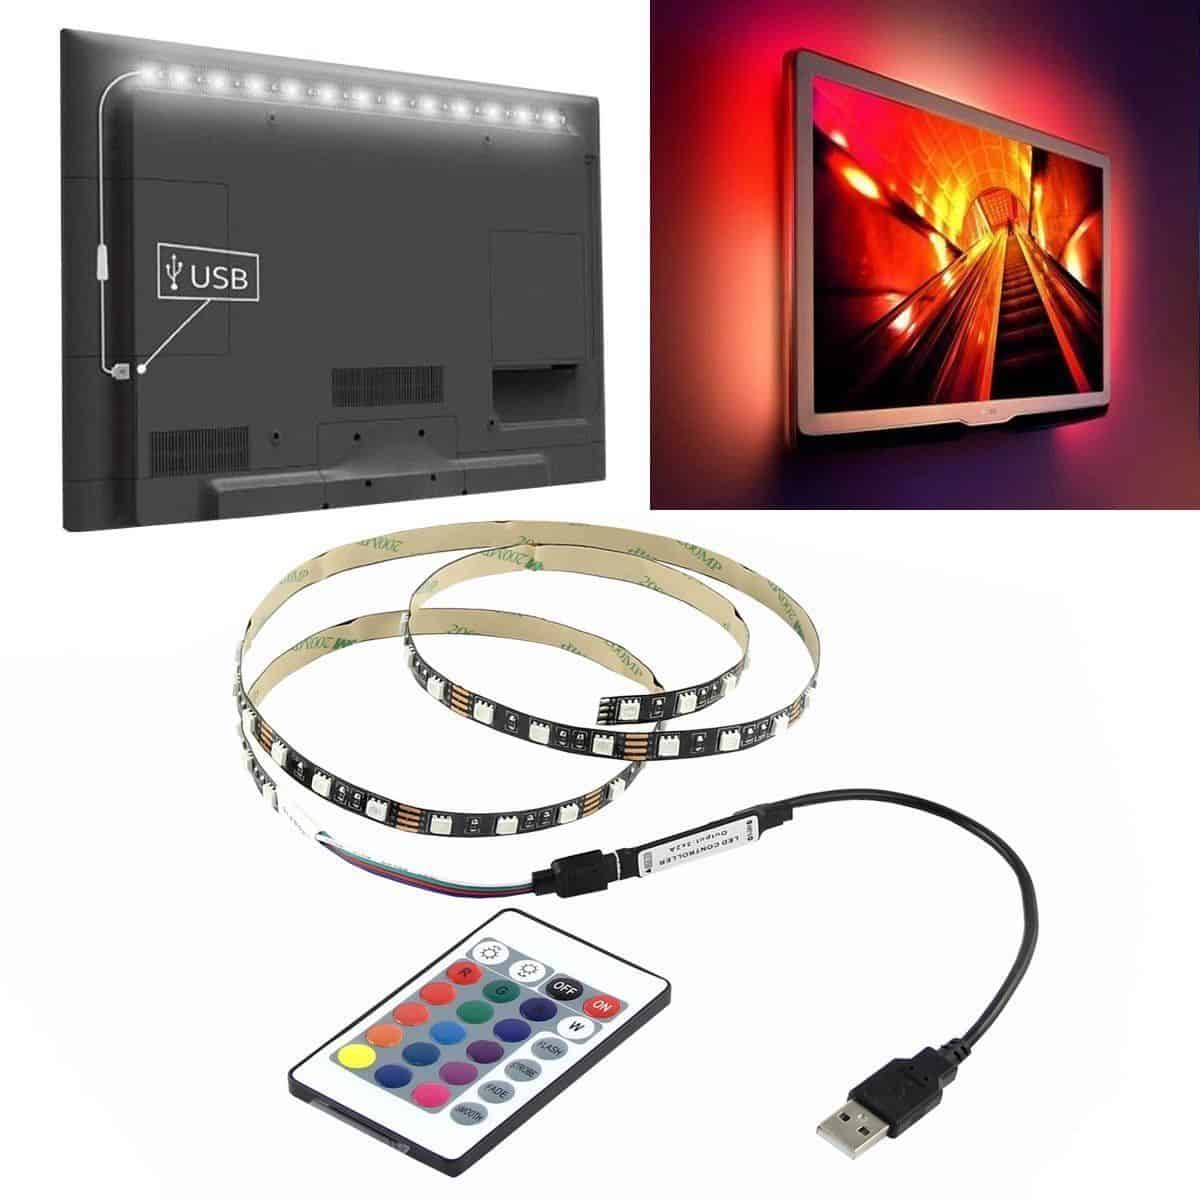 1 meter usb rgb led streifen mit regler und fernbedienung f r nur 3 06 euro inkl versand led. Black Bedroom Furniture Sets. Home Design Ideas